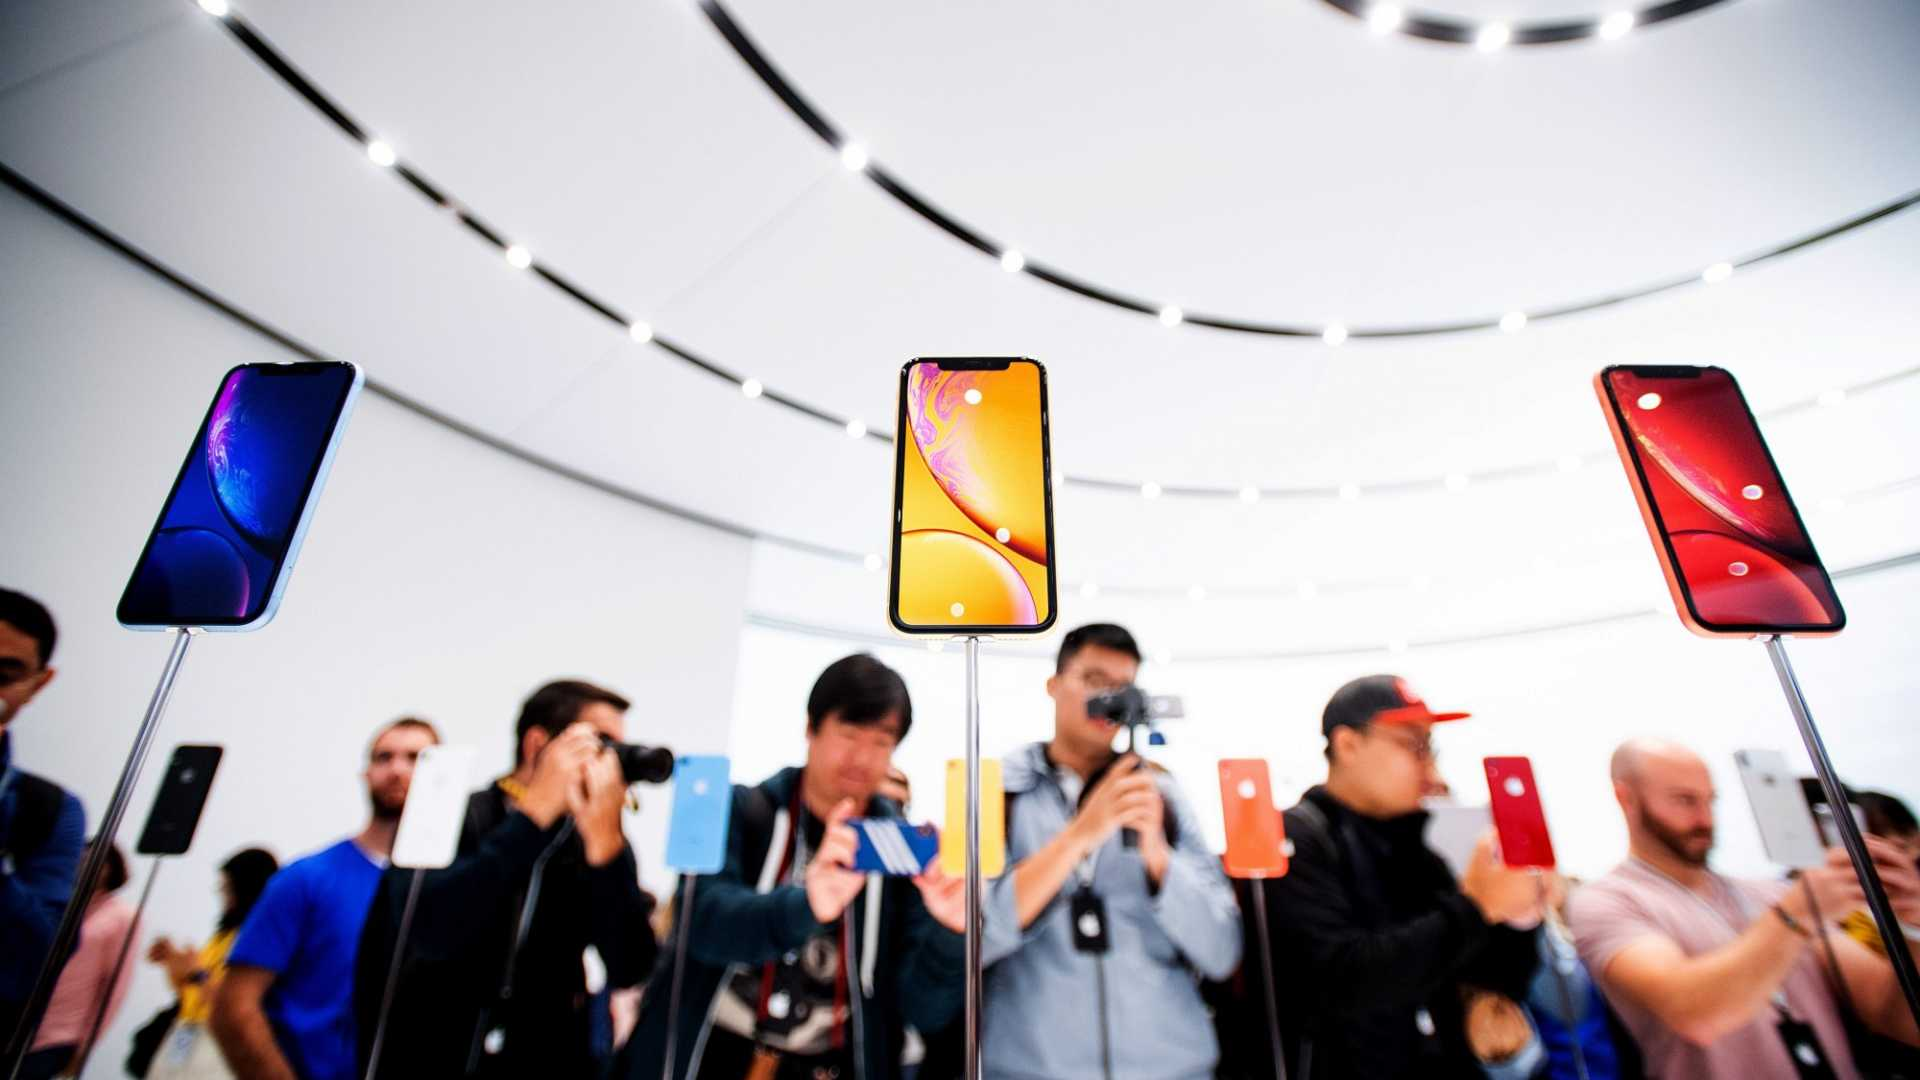 Planning on Buying a New iPhone? Here's Why You Should Do It Now